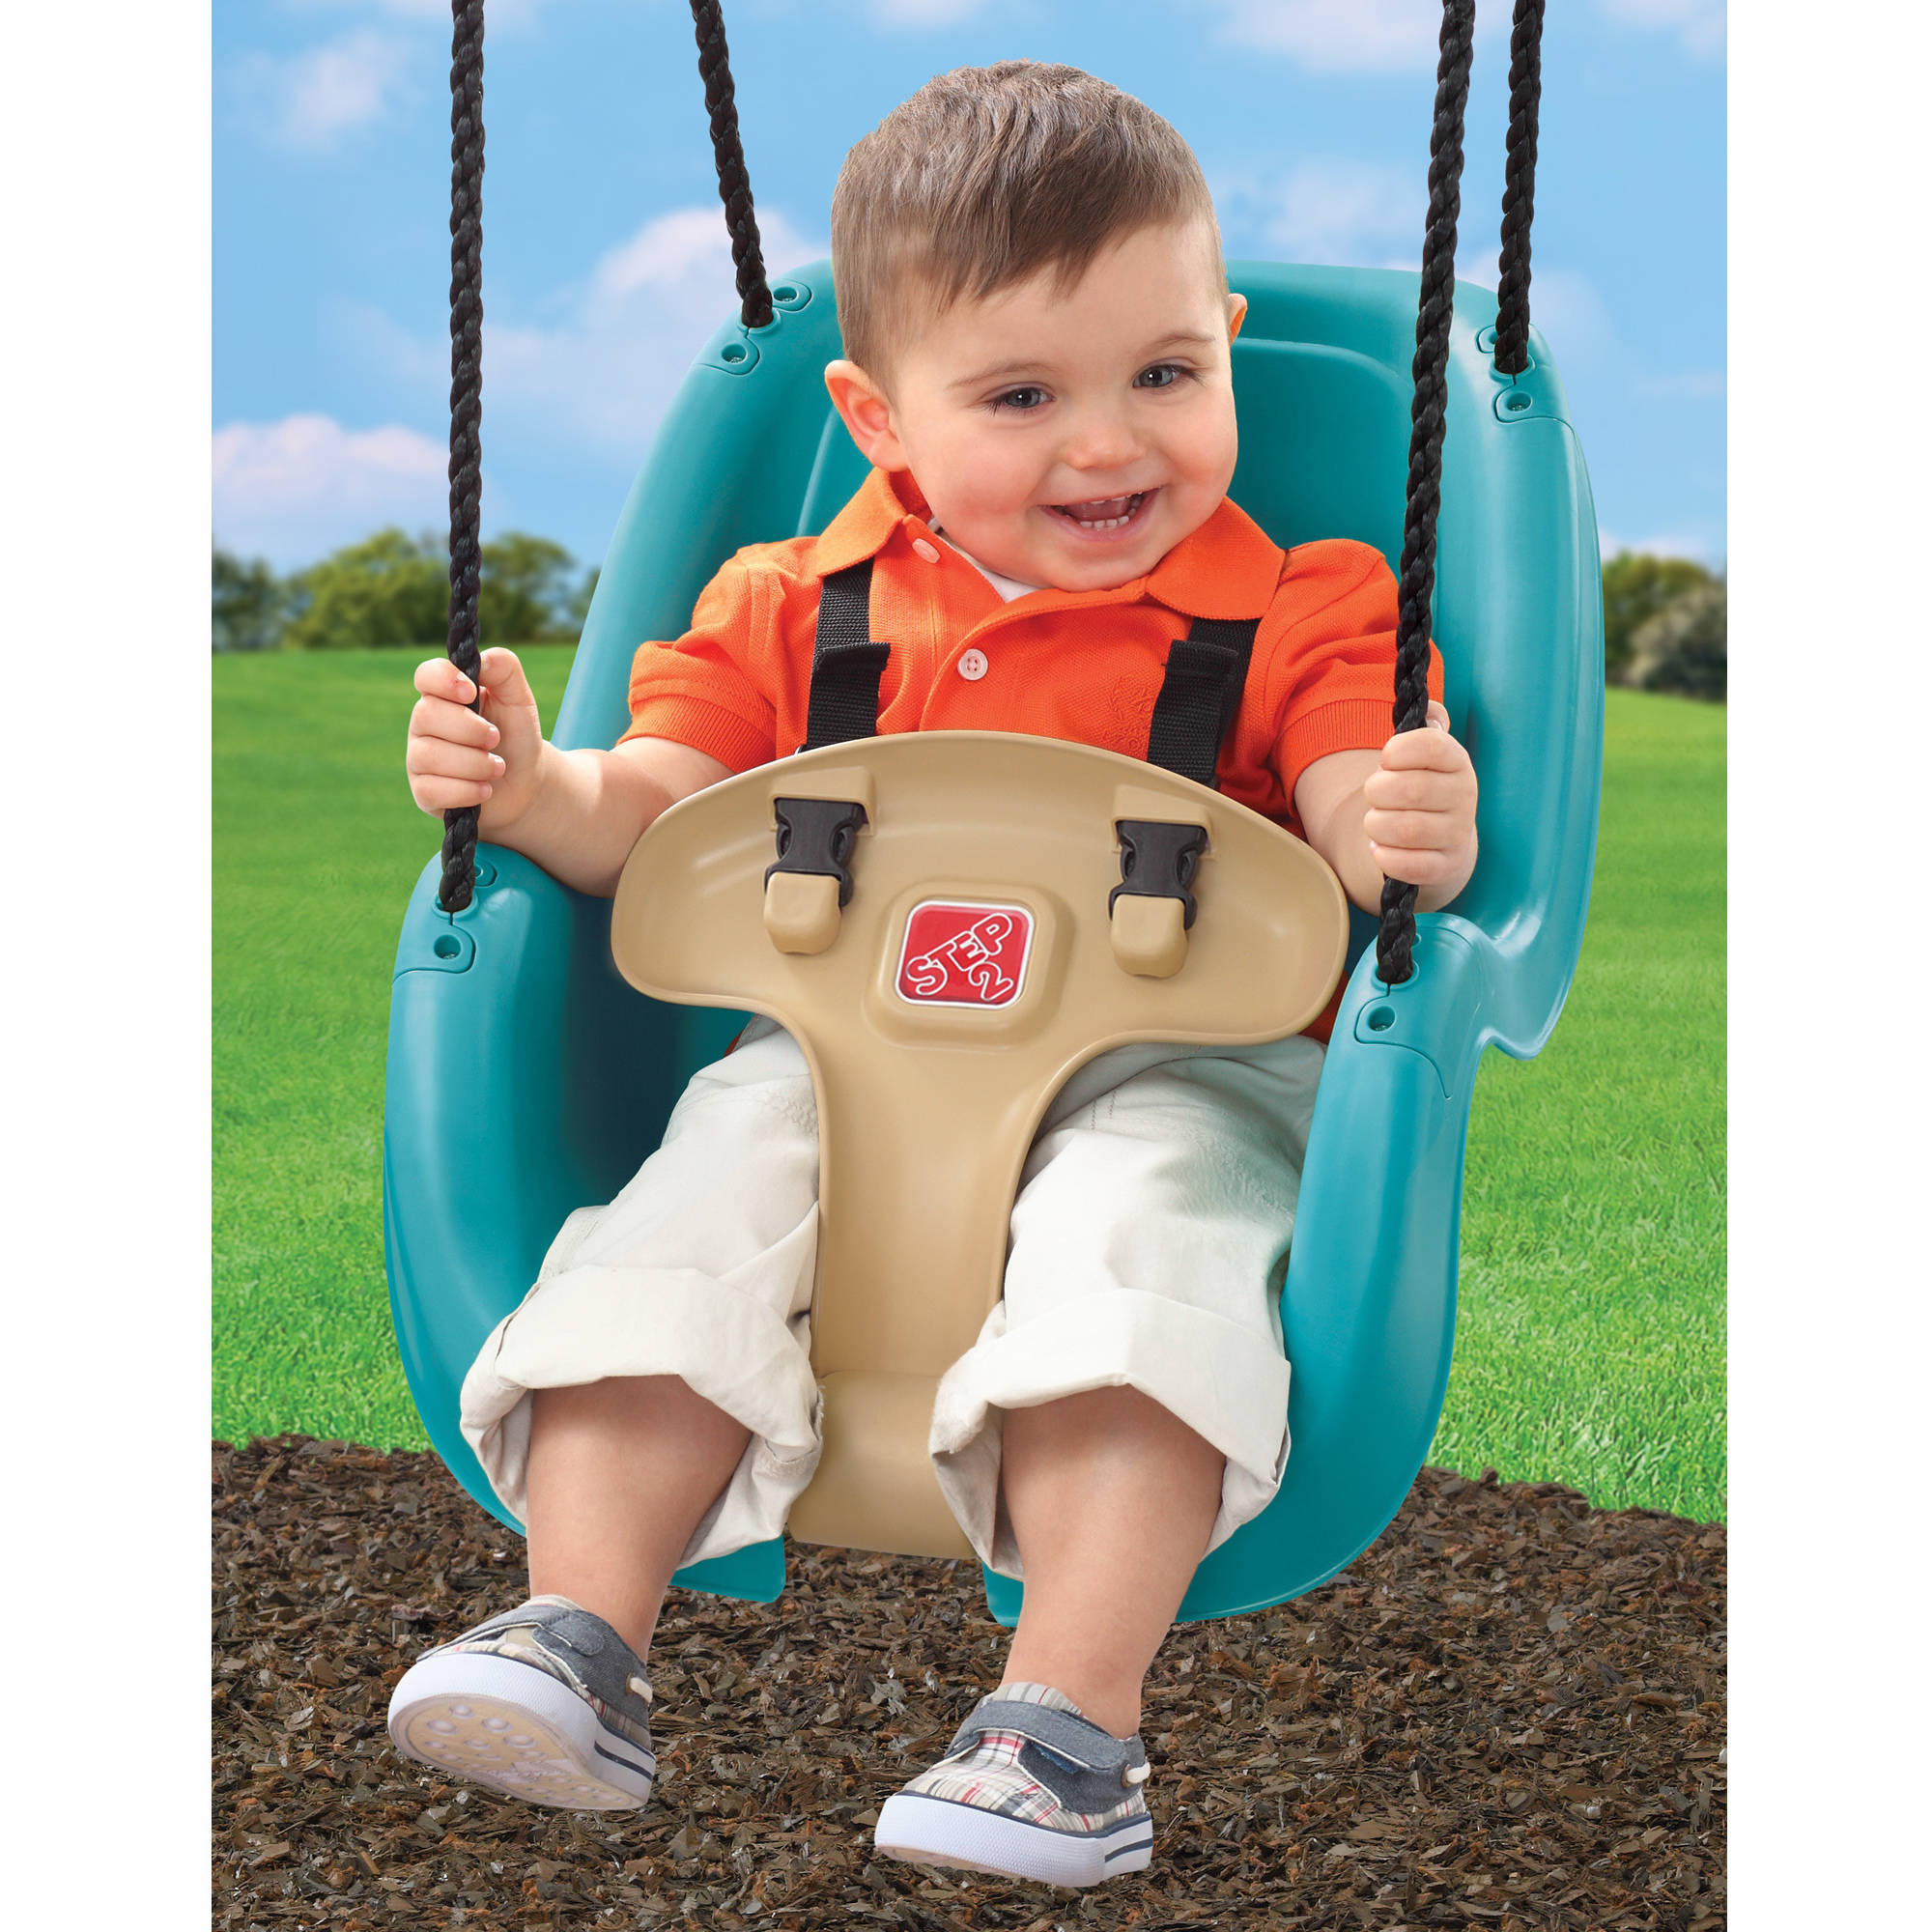 Step2 Toddler Swing, Teal